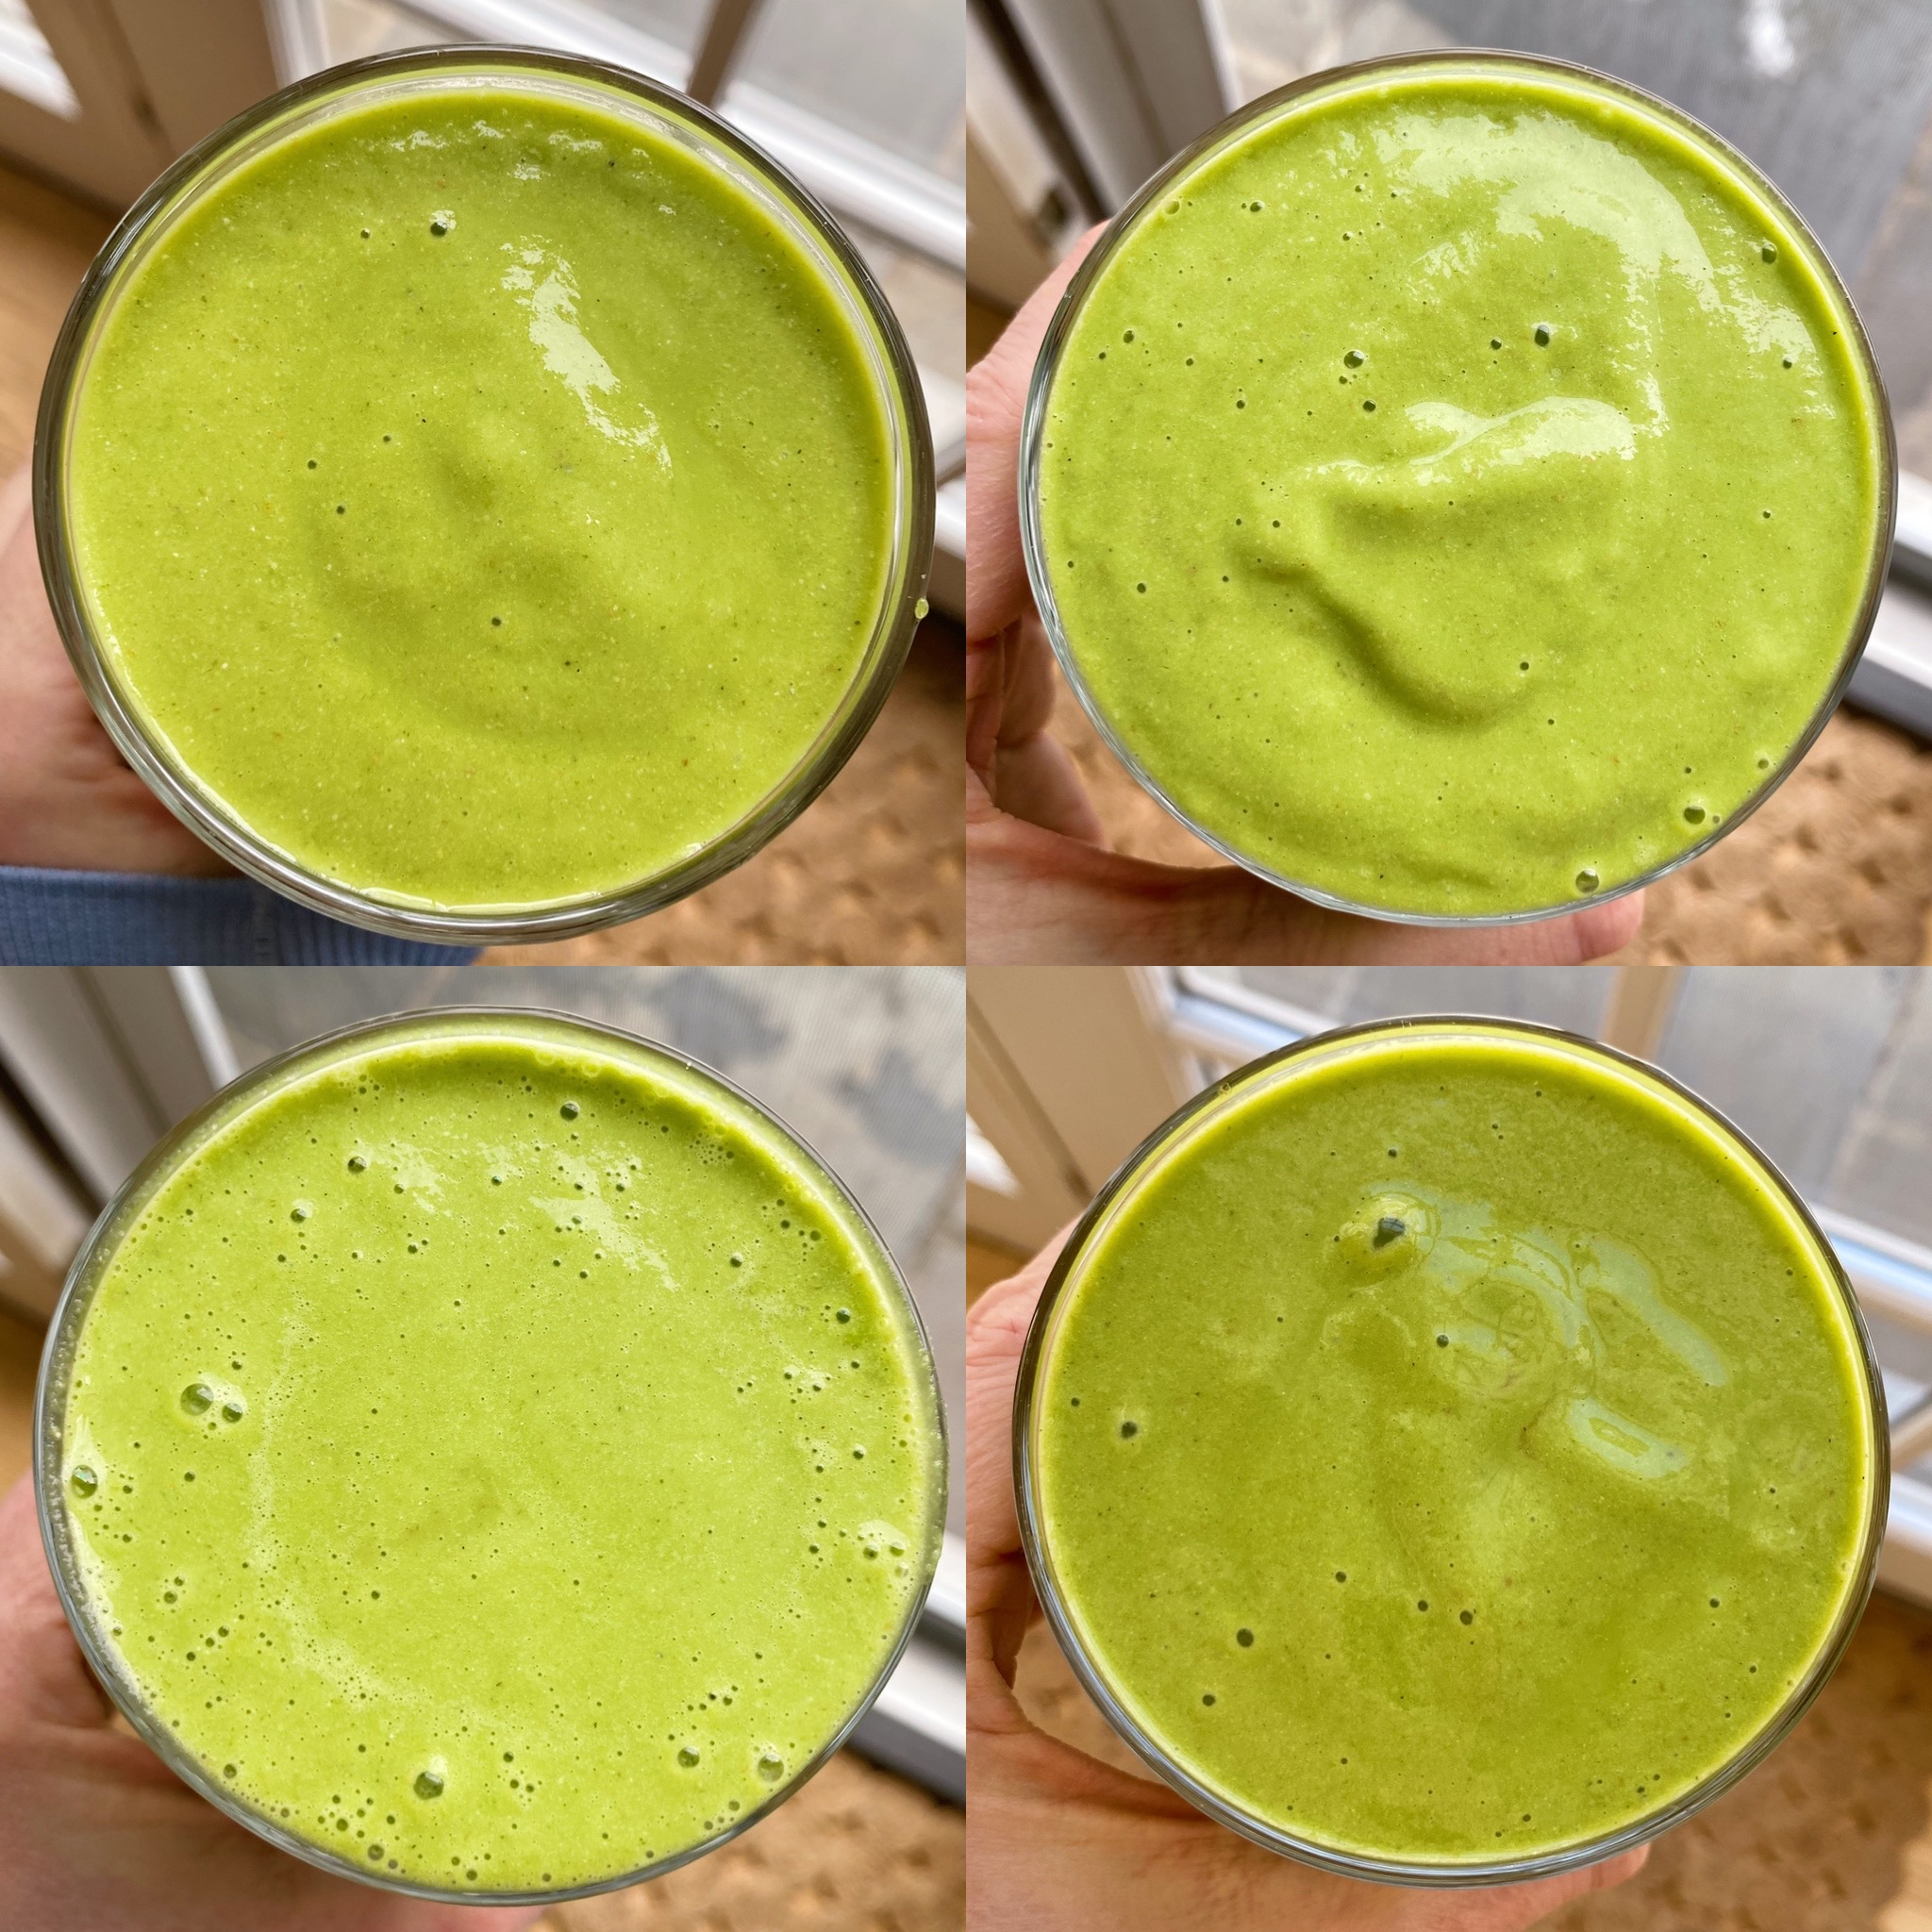 Simple Tropical green smoothie recipe gluten-free #glutenfreerecipes www.healthygffamily.com